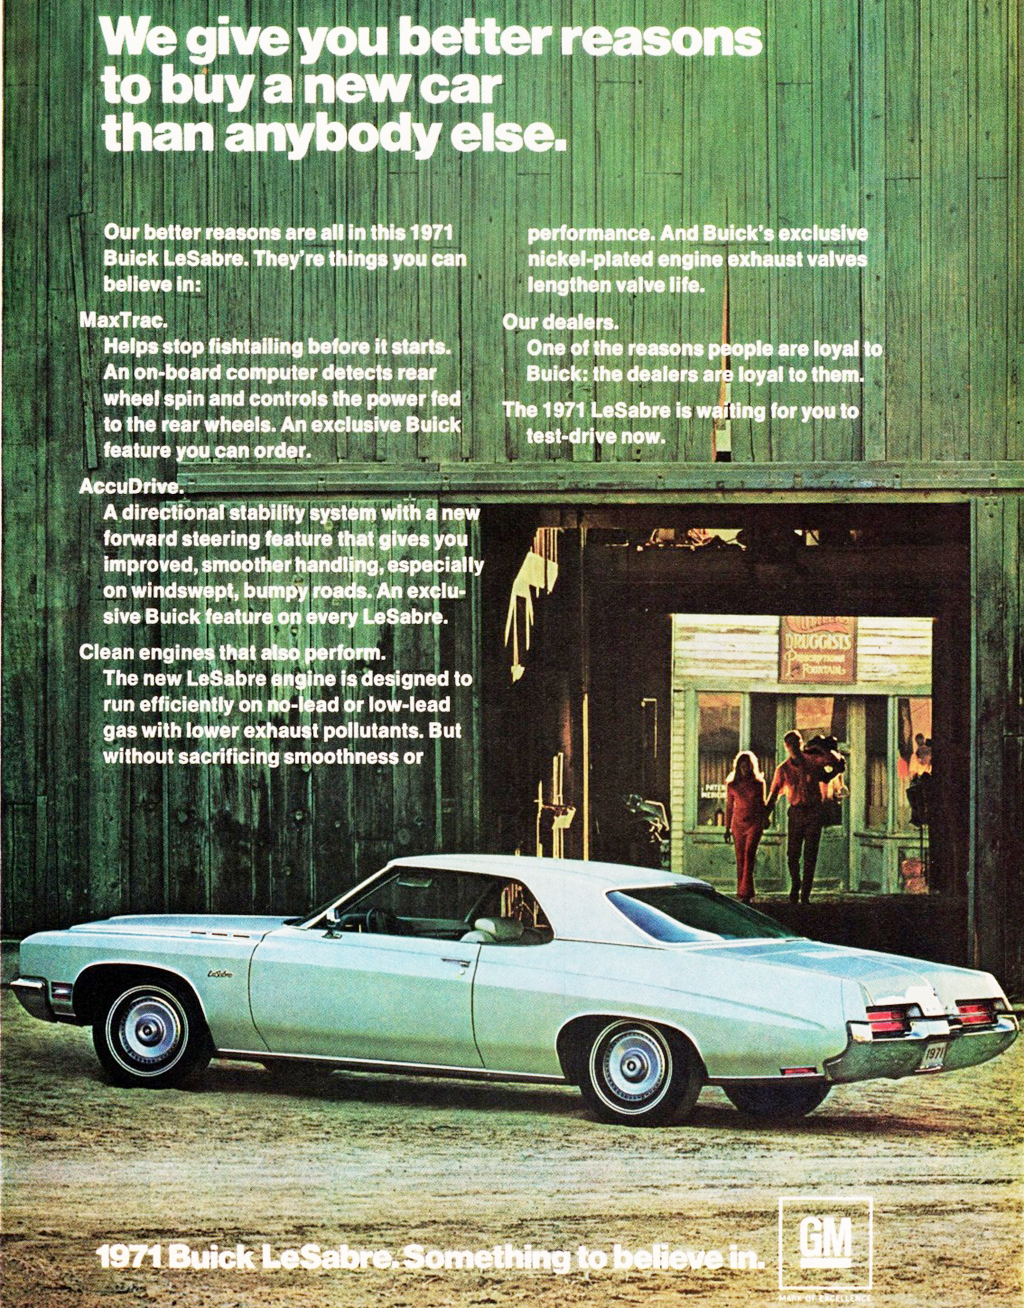 1971 Buick LeSabre ad | CLASSIC CARS TODAY ONLINE